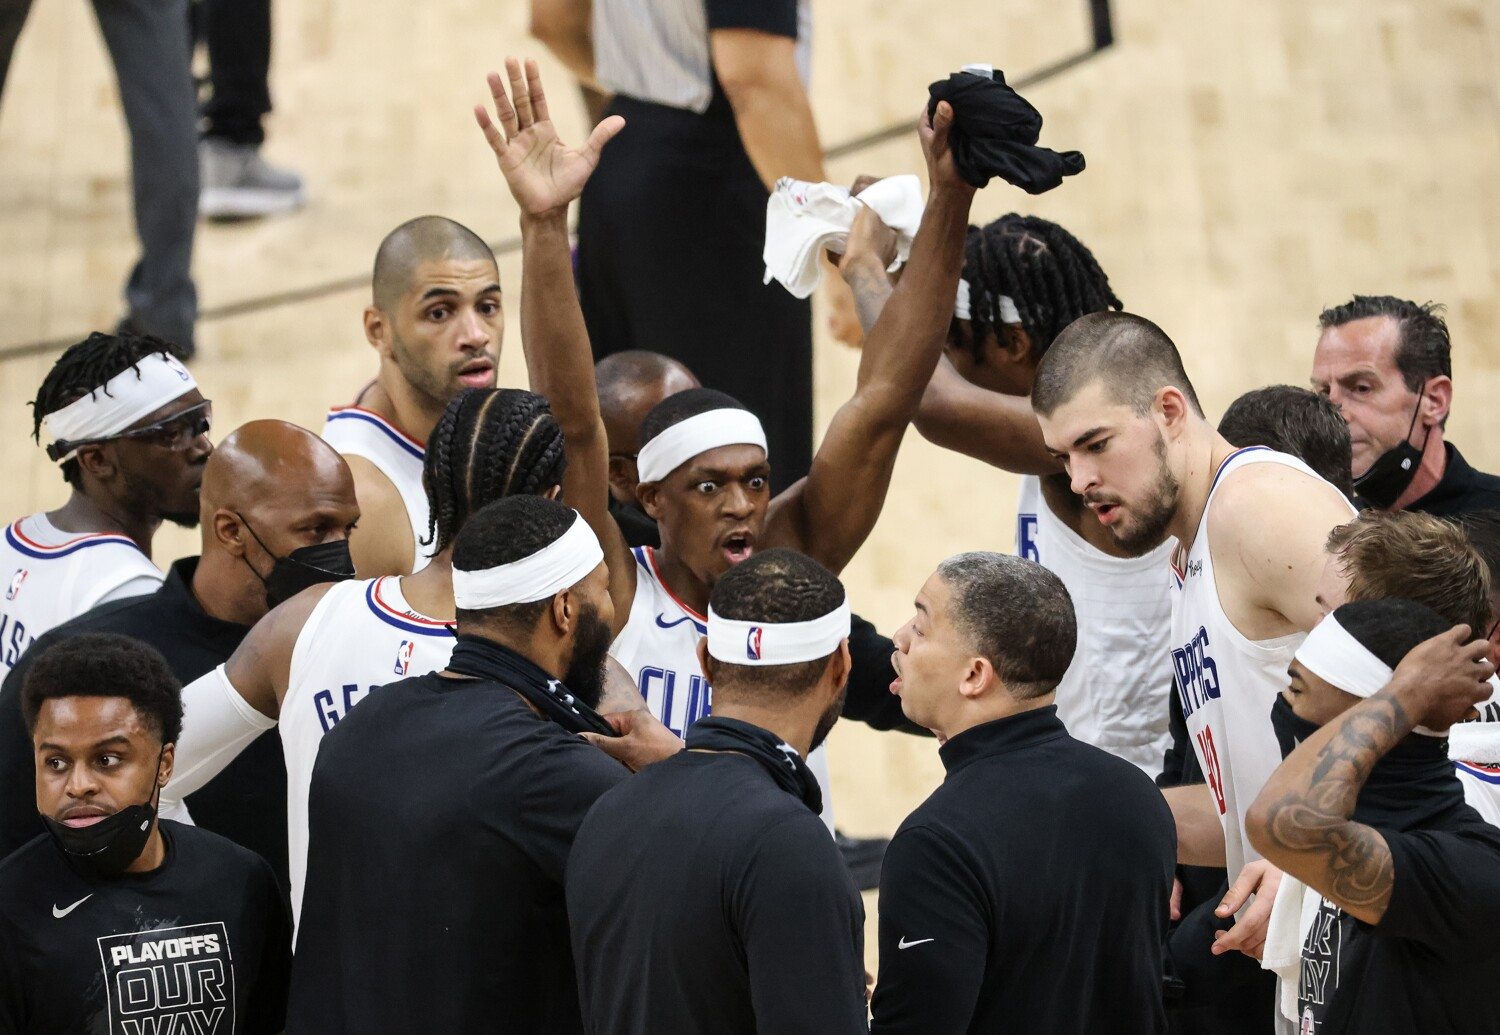 Column: Fan hatred for Clippers? Time for L.A. to get behind contenders